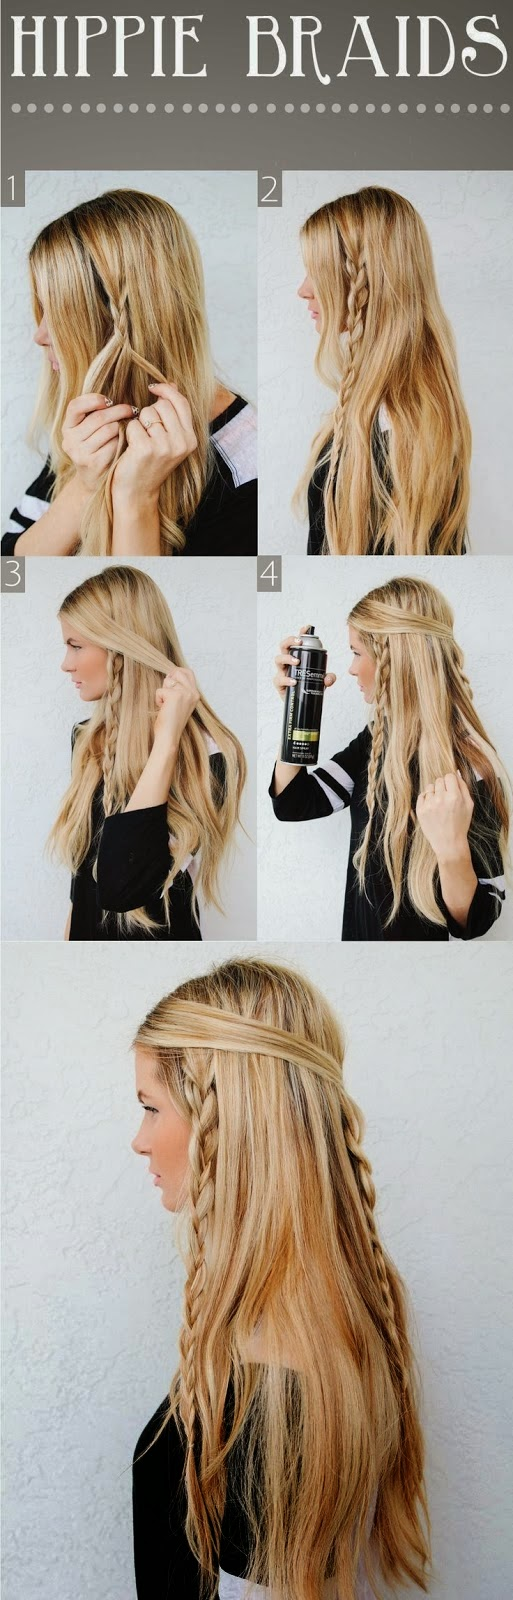 5 Gorgeous Middle Length Hairstyles}